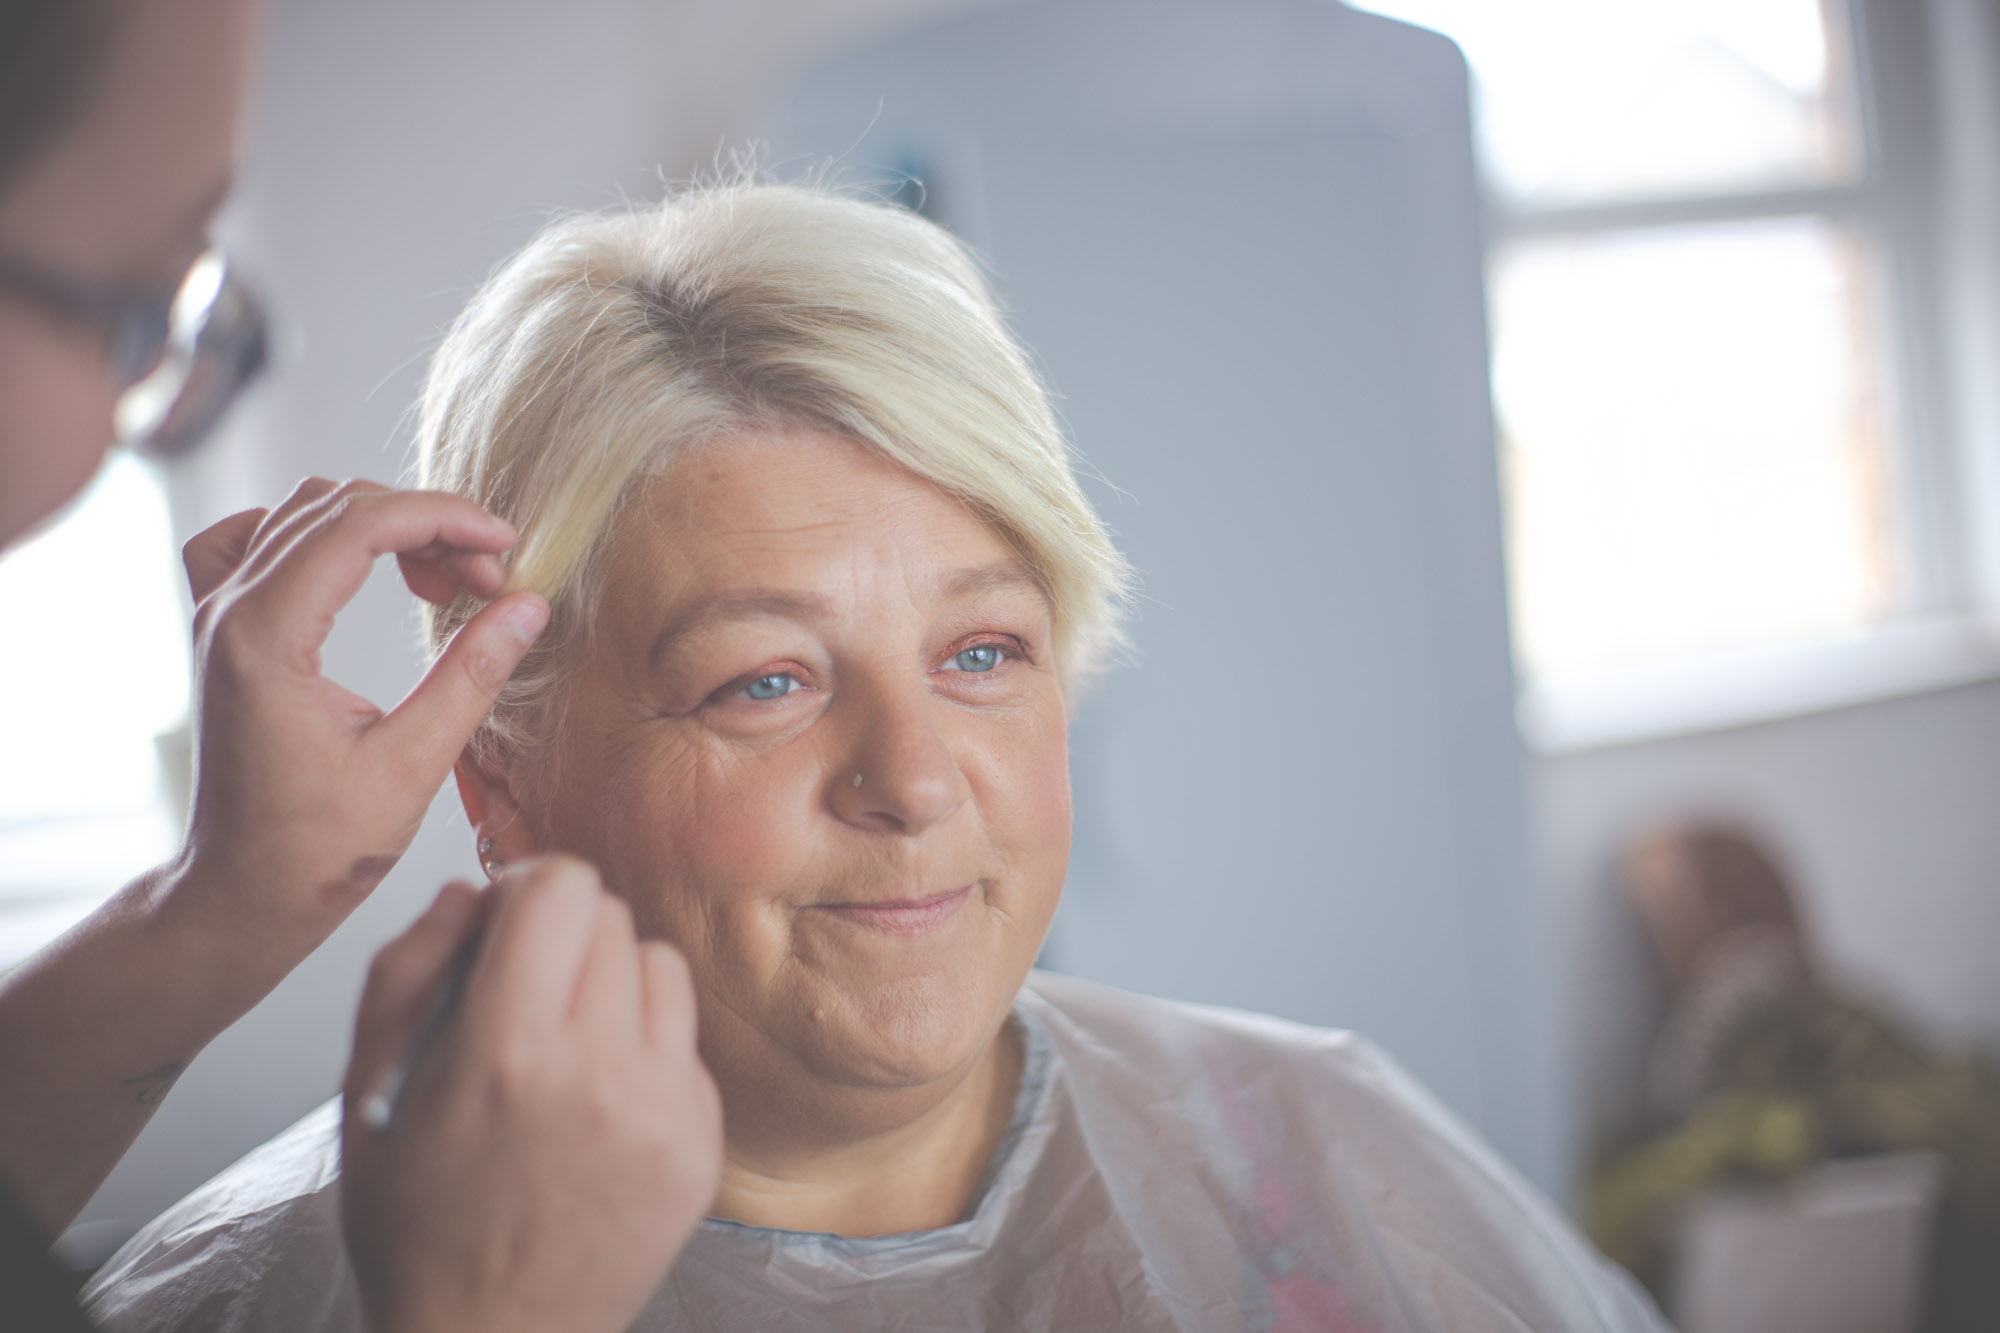 makeover-pamper-portraits-photos-keighley-skipton-bradford-leeds-chicca-photography-1.jpg